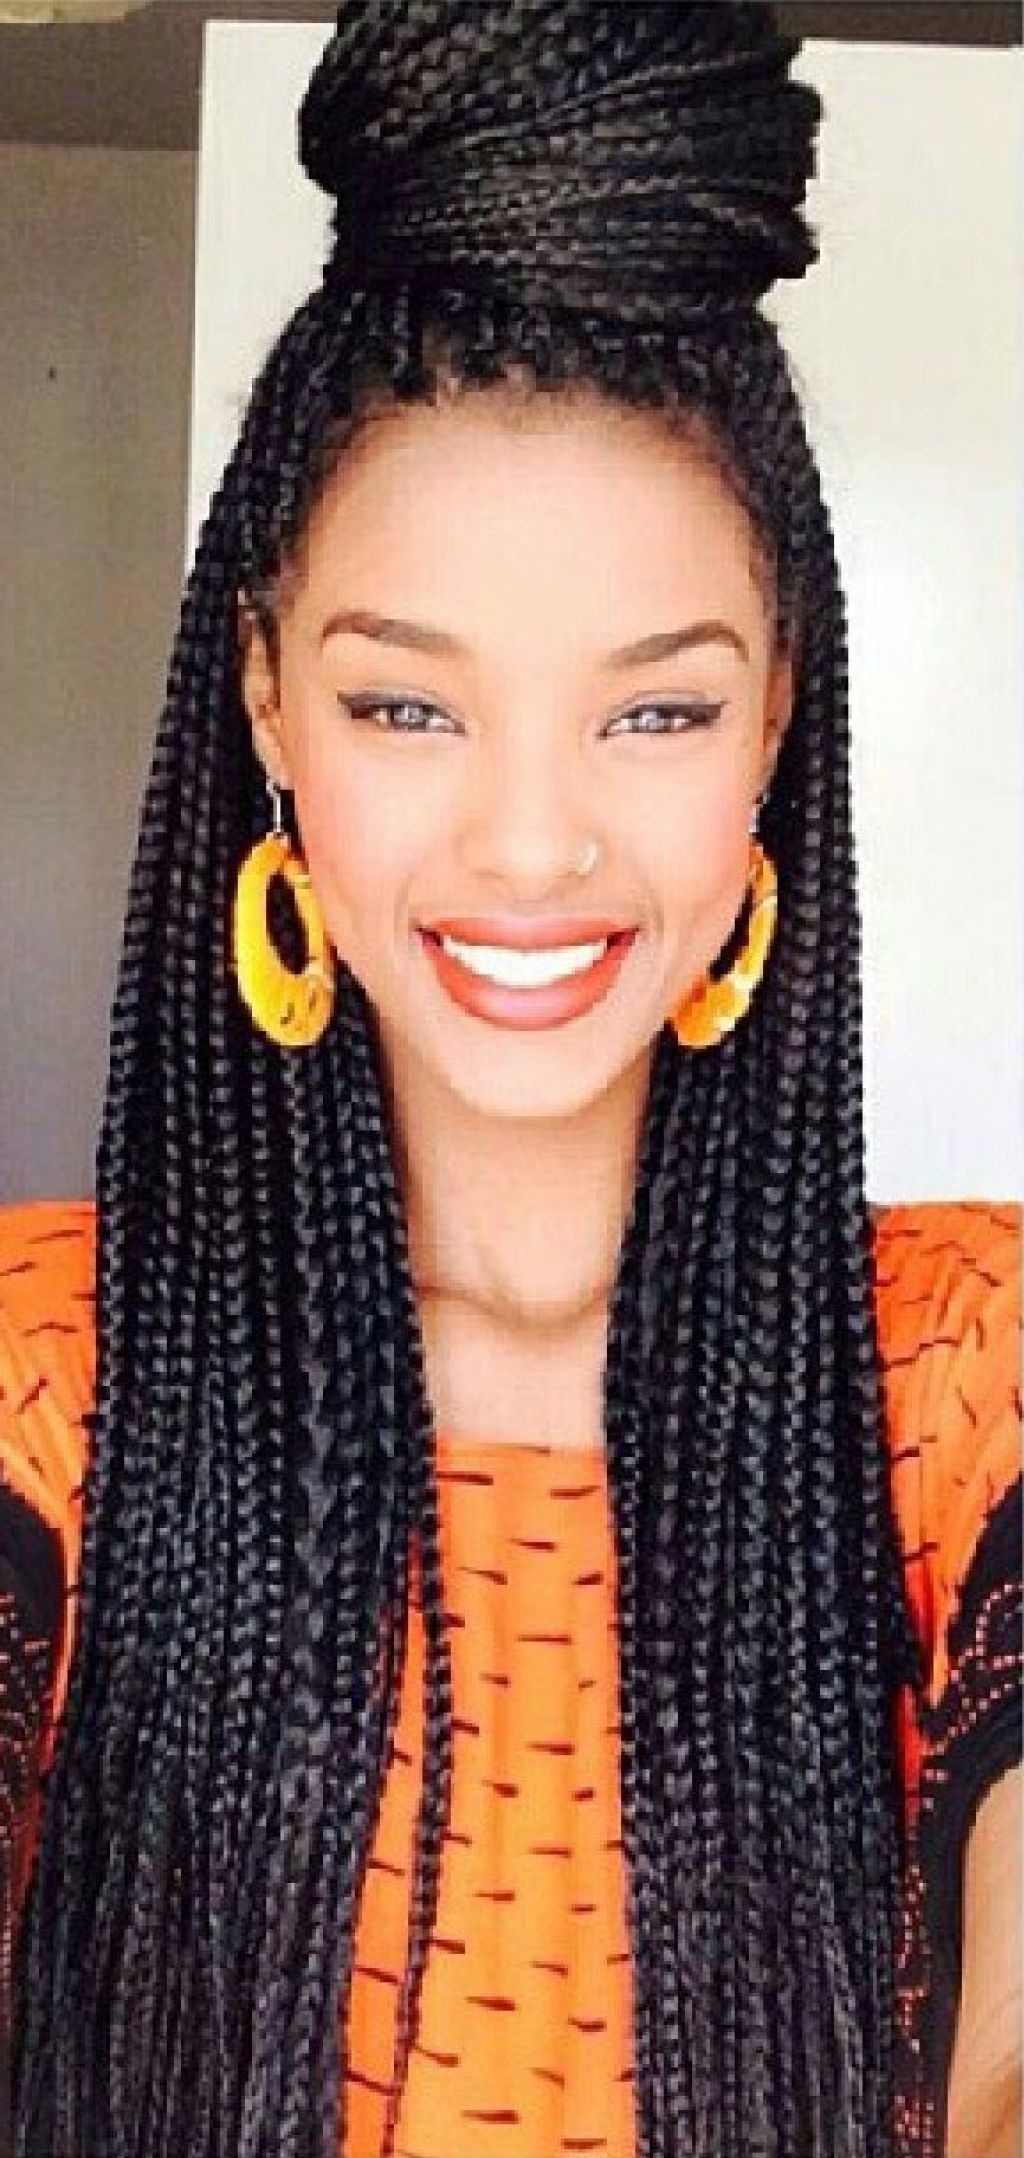 [%Favorite Twist Braided Hairstyles For Fair Twisted Braided Hairstyles For 100 [ Twist Braids Hairstyles|Fair Twisted Braided Hairstyles For 100 [ Twist Braids Hairstyles In Popular Twist Braided Hairstyles%] (View 1 of 15)